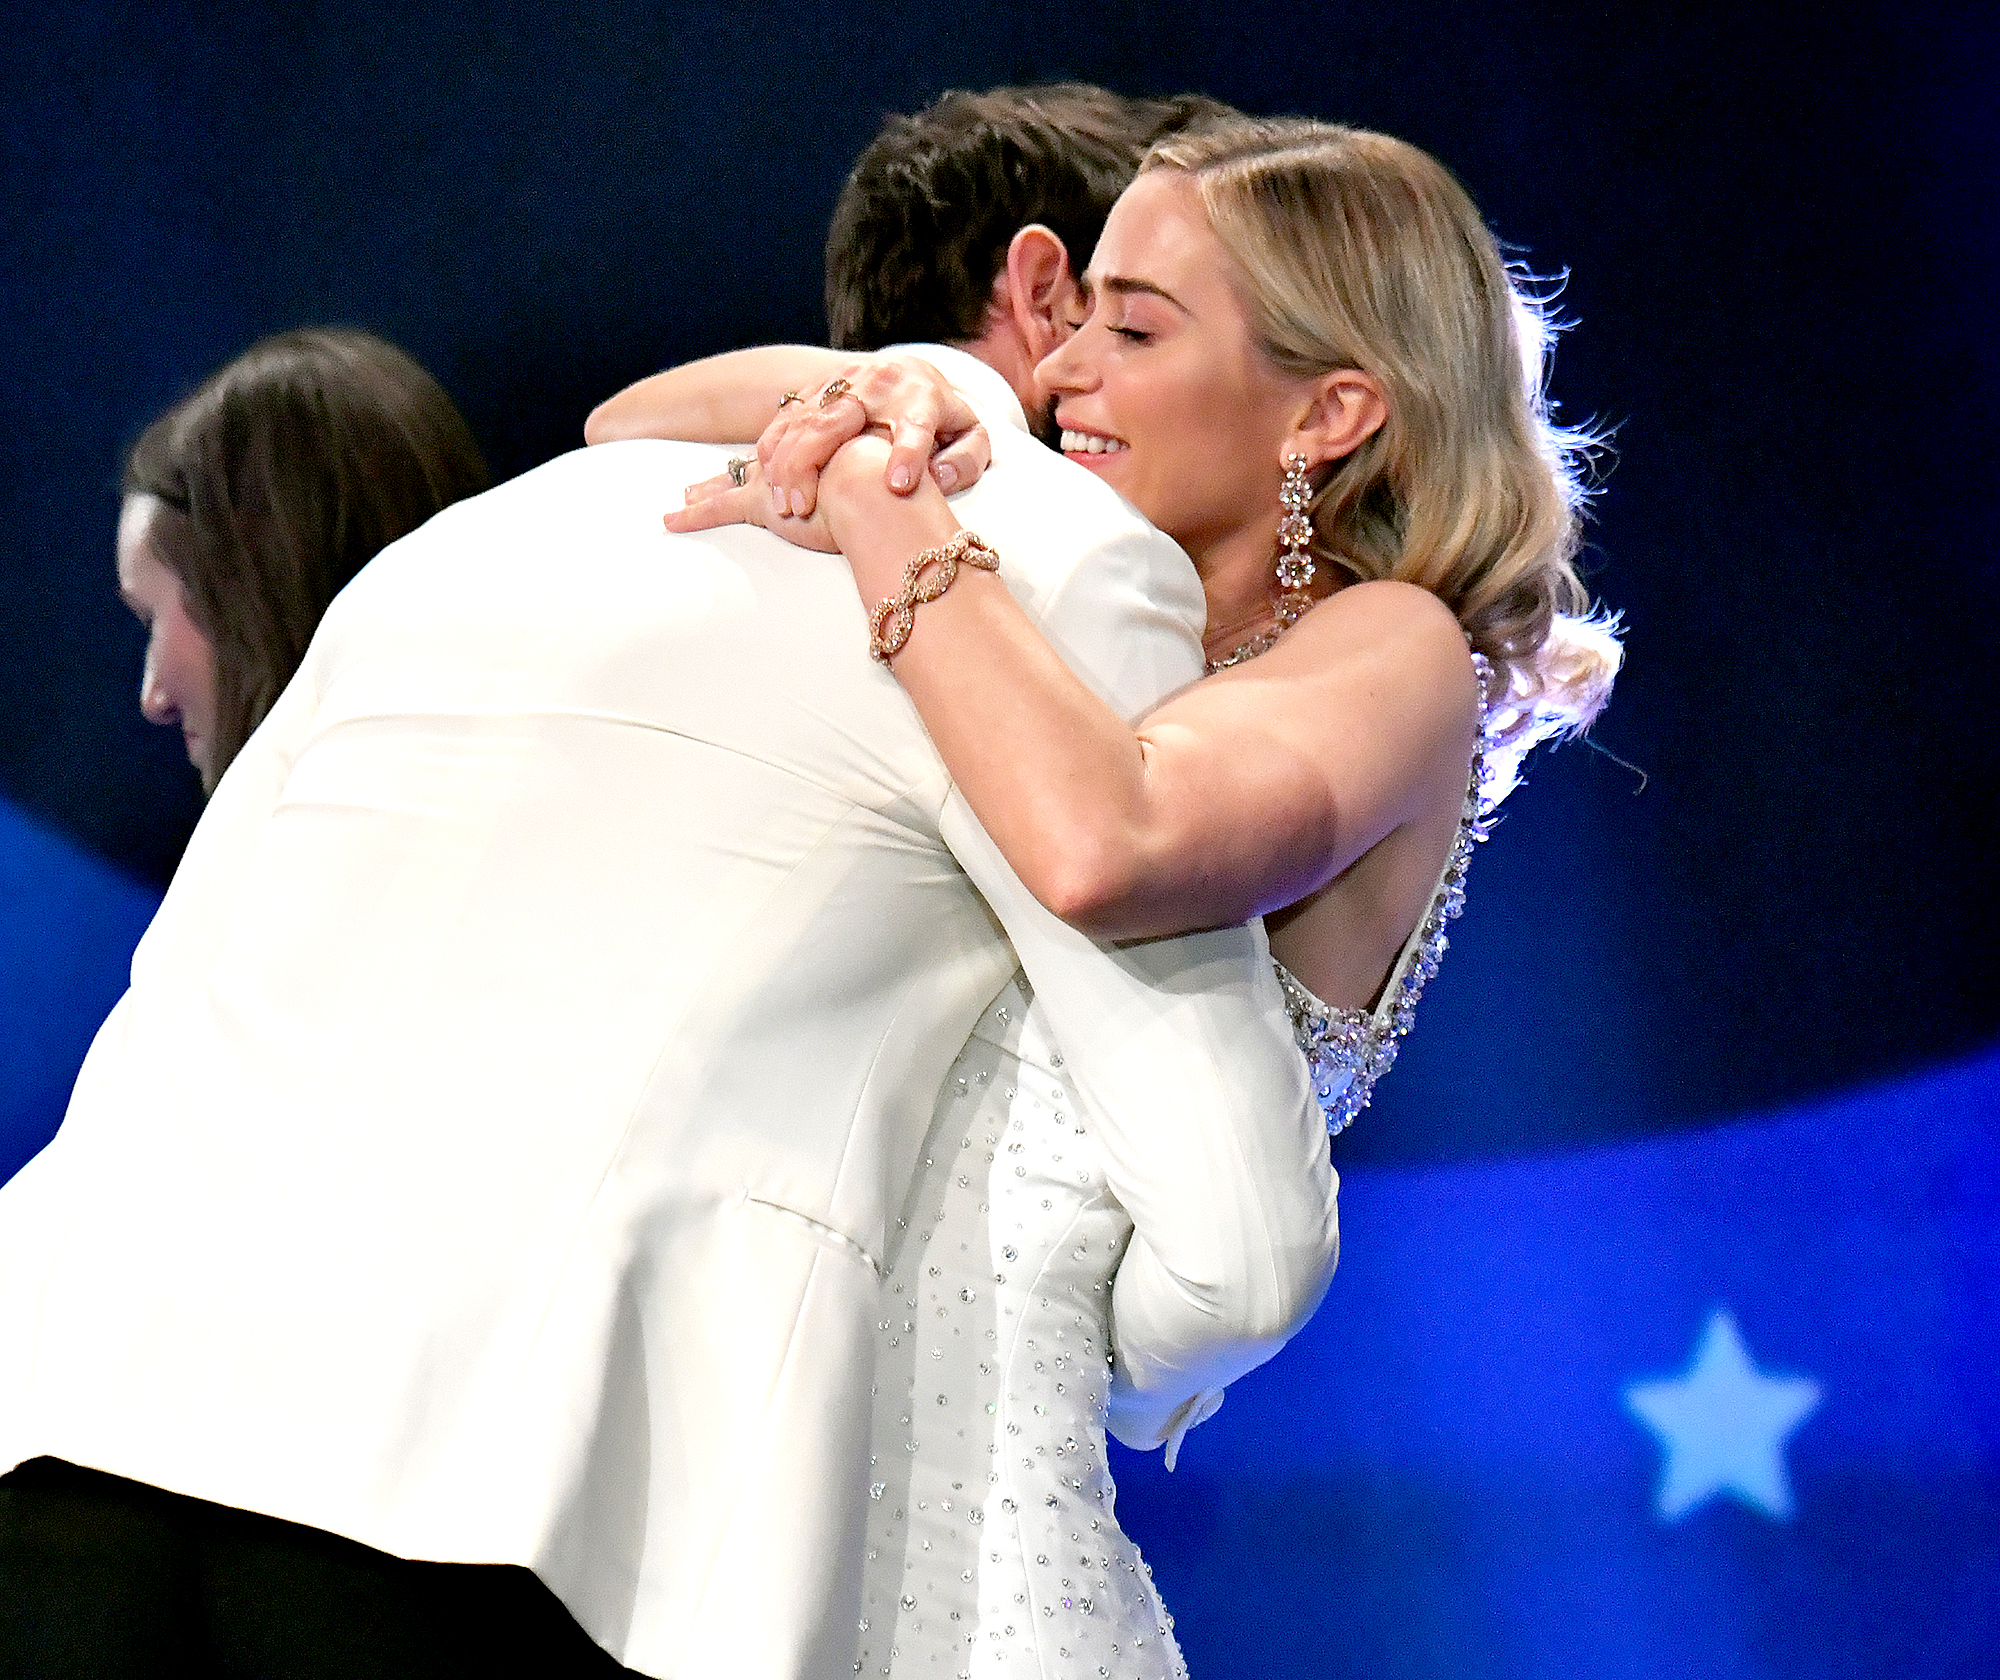 """John-Krasinski-and-Emily-Blunt-love-quotes - """"I just wanted to say thank you to all the incredible kindness that has been shown to this film – the critics, but most of all, everybody that has seen and loved this movie,"""" Krasinski said as he accepted the Critics' Choice award for Best Sci-Fi or Horror Movie for A Quiet Place in January 2019. """"It means the absolute world to our crew and to our cast and to no one else more than me. I got to make a movie about a love story, and a love letter to my kids and I got to do it with the love of my life by my side. So, I'm pretty sure it doesn't get much better than that!"""""""